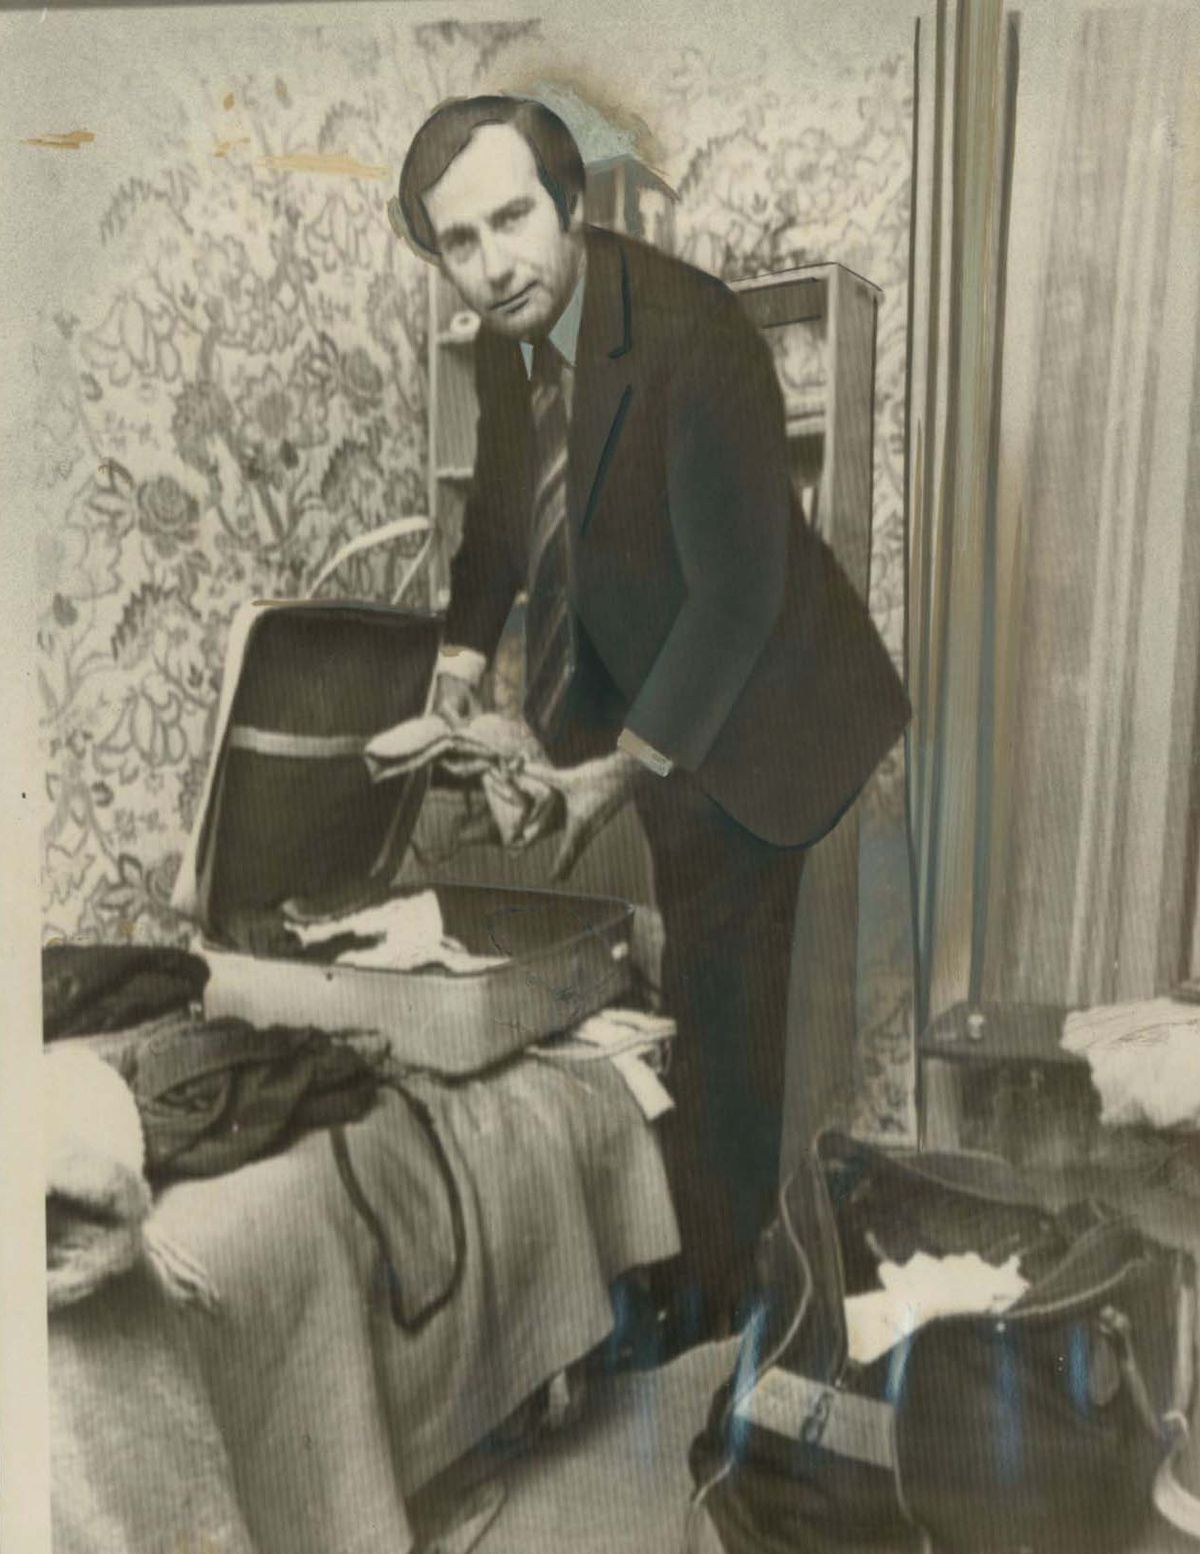 Packing ready to leave Melbourne in 1975